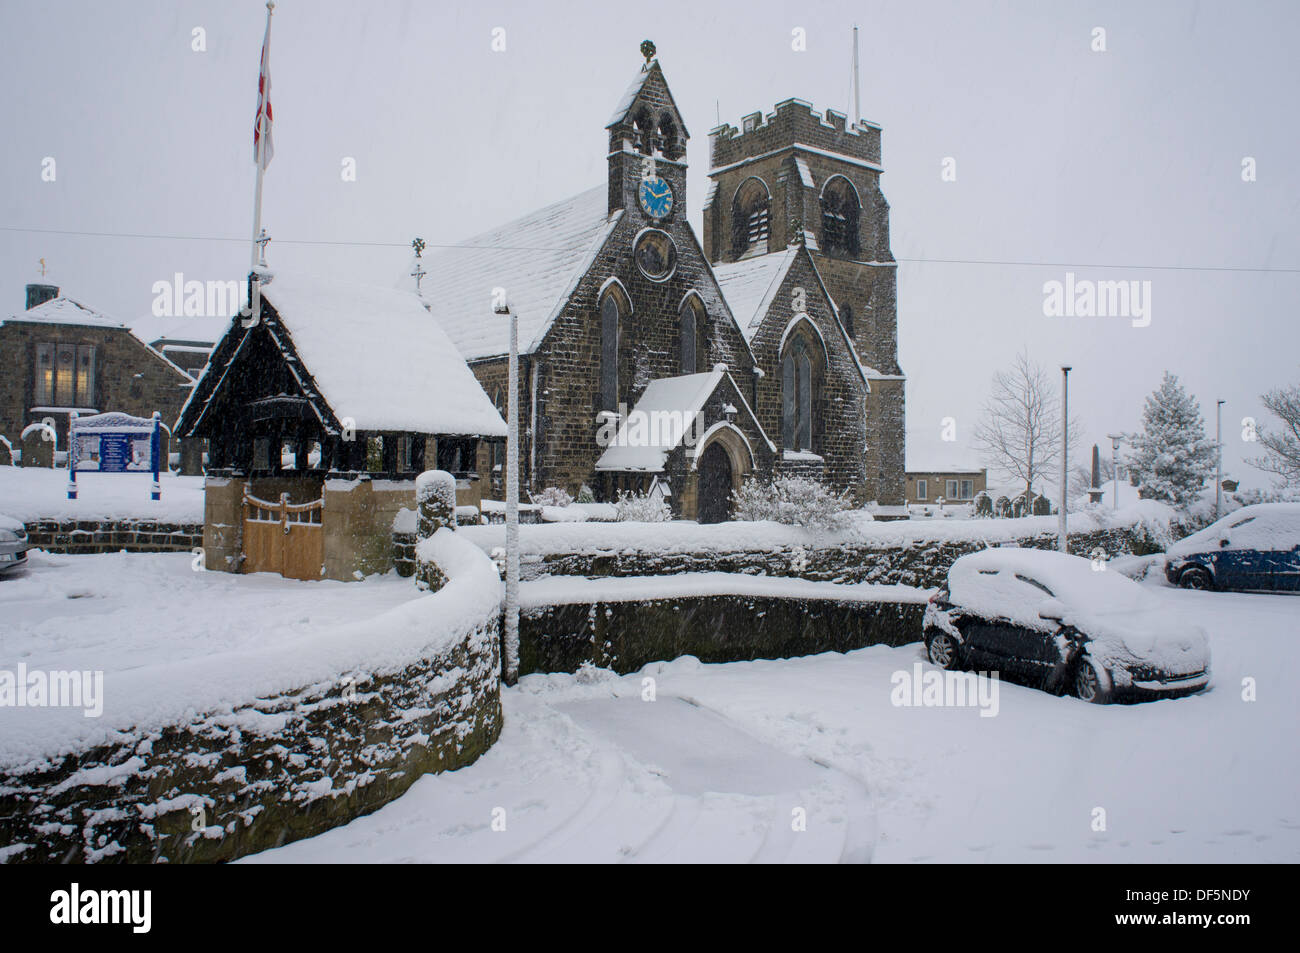 Cold, grey winter scene with snow falling on St. John's Church (buildings & cars covered with white layer) - Baildon, West Yorkshire, England, UK. - Stock Image